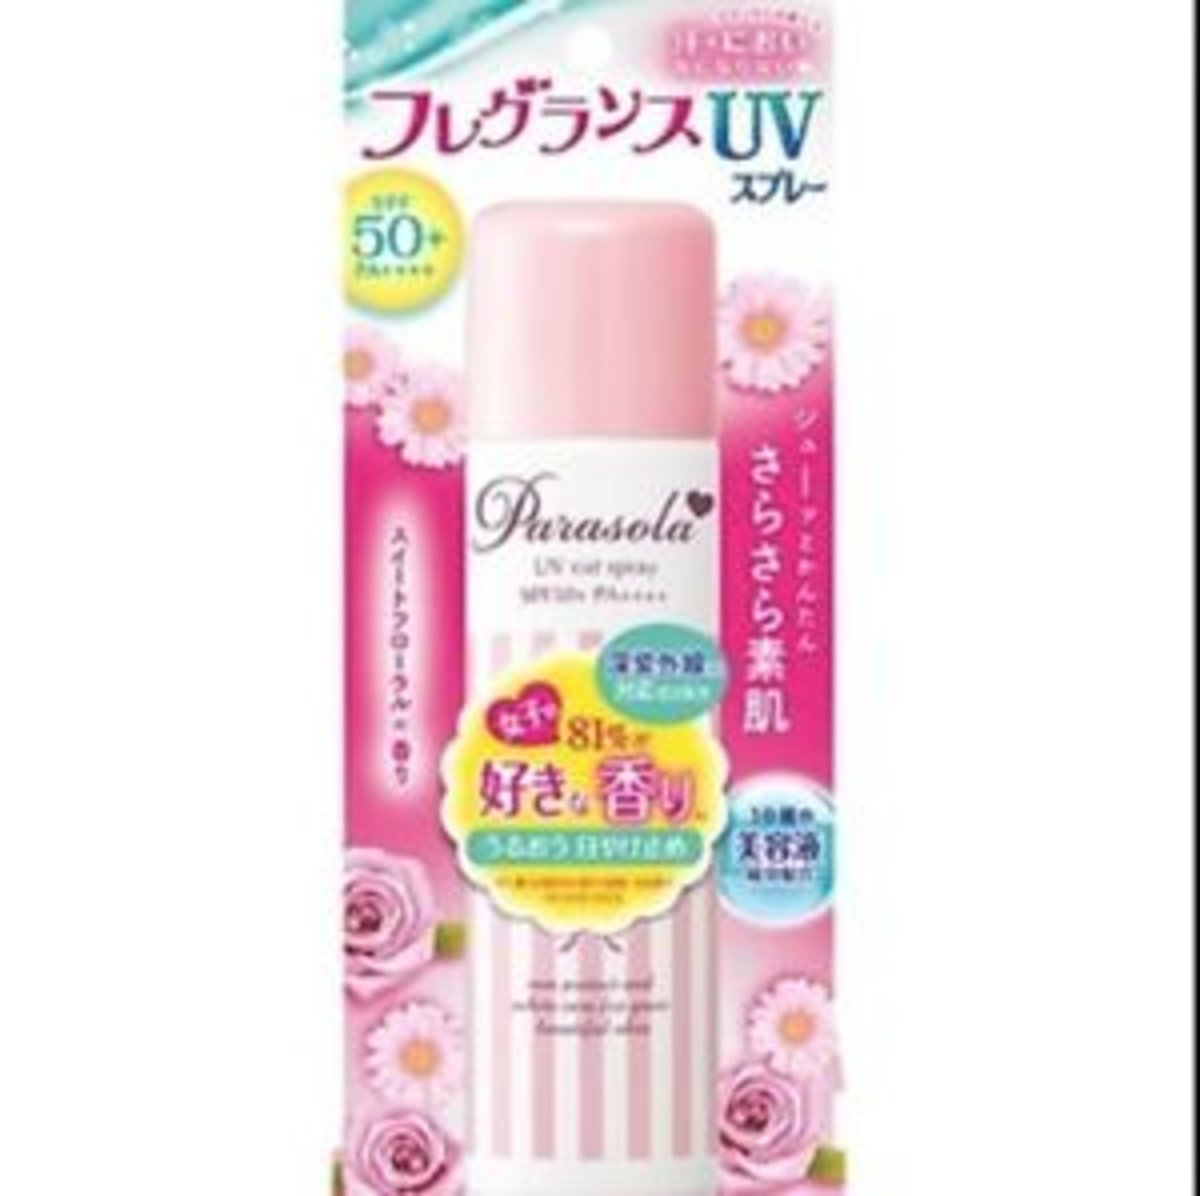 Japan Naris Up Parasola UV CUT Spray SPF50+PA++++(SWEET FLORAL) (90g) (Parallel import)